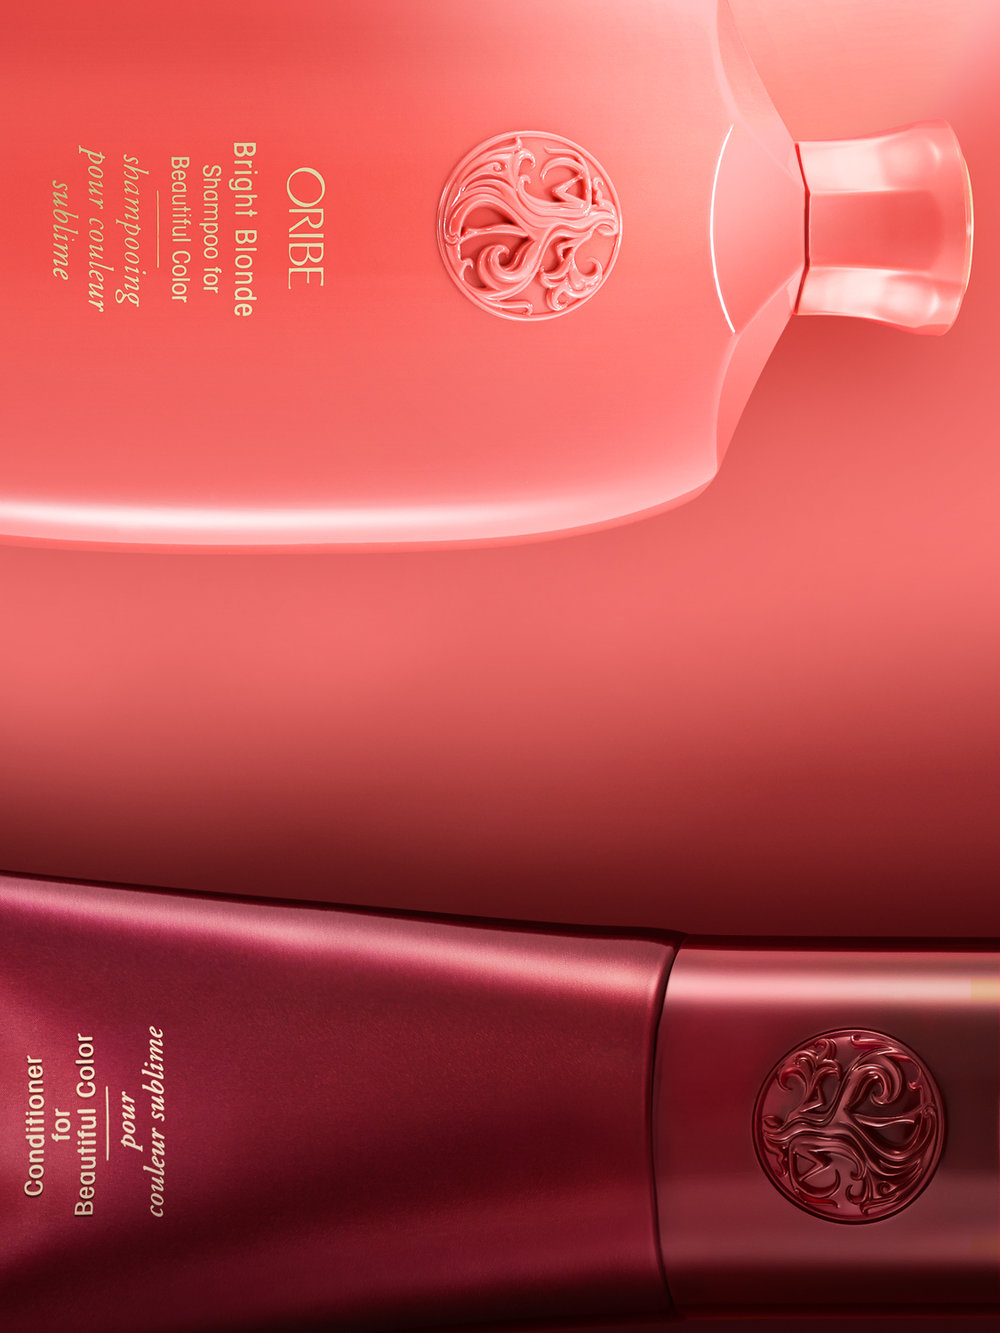 150511 Oribe Bright Color B.jpg